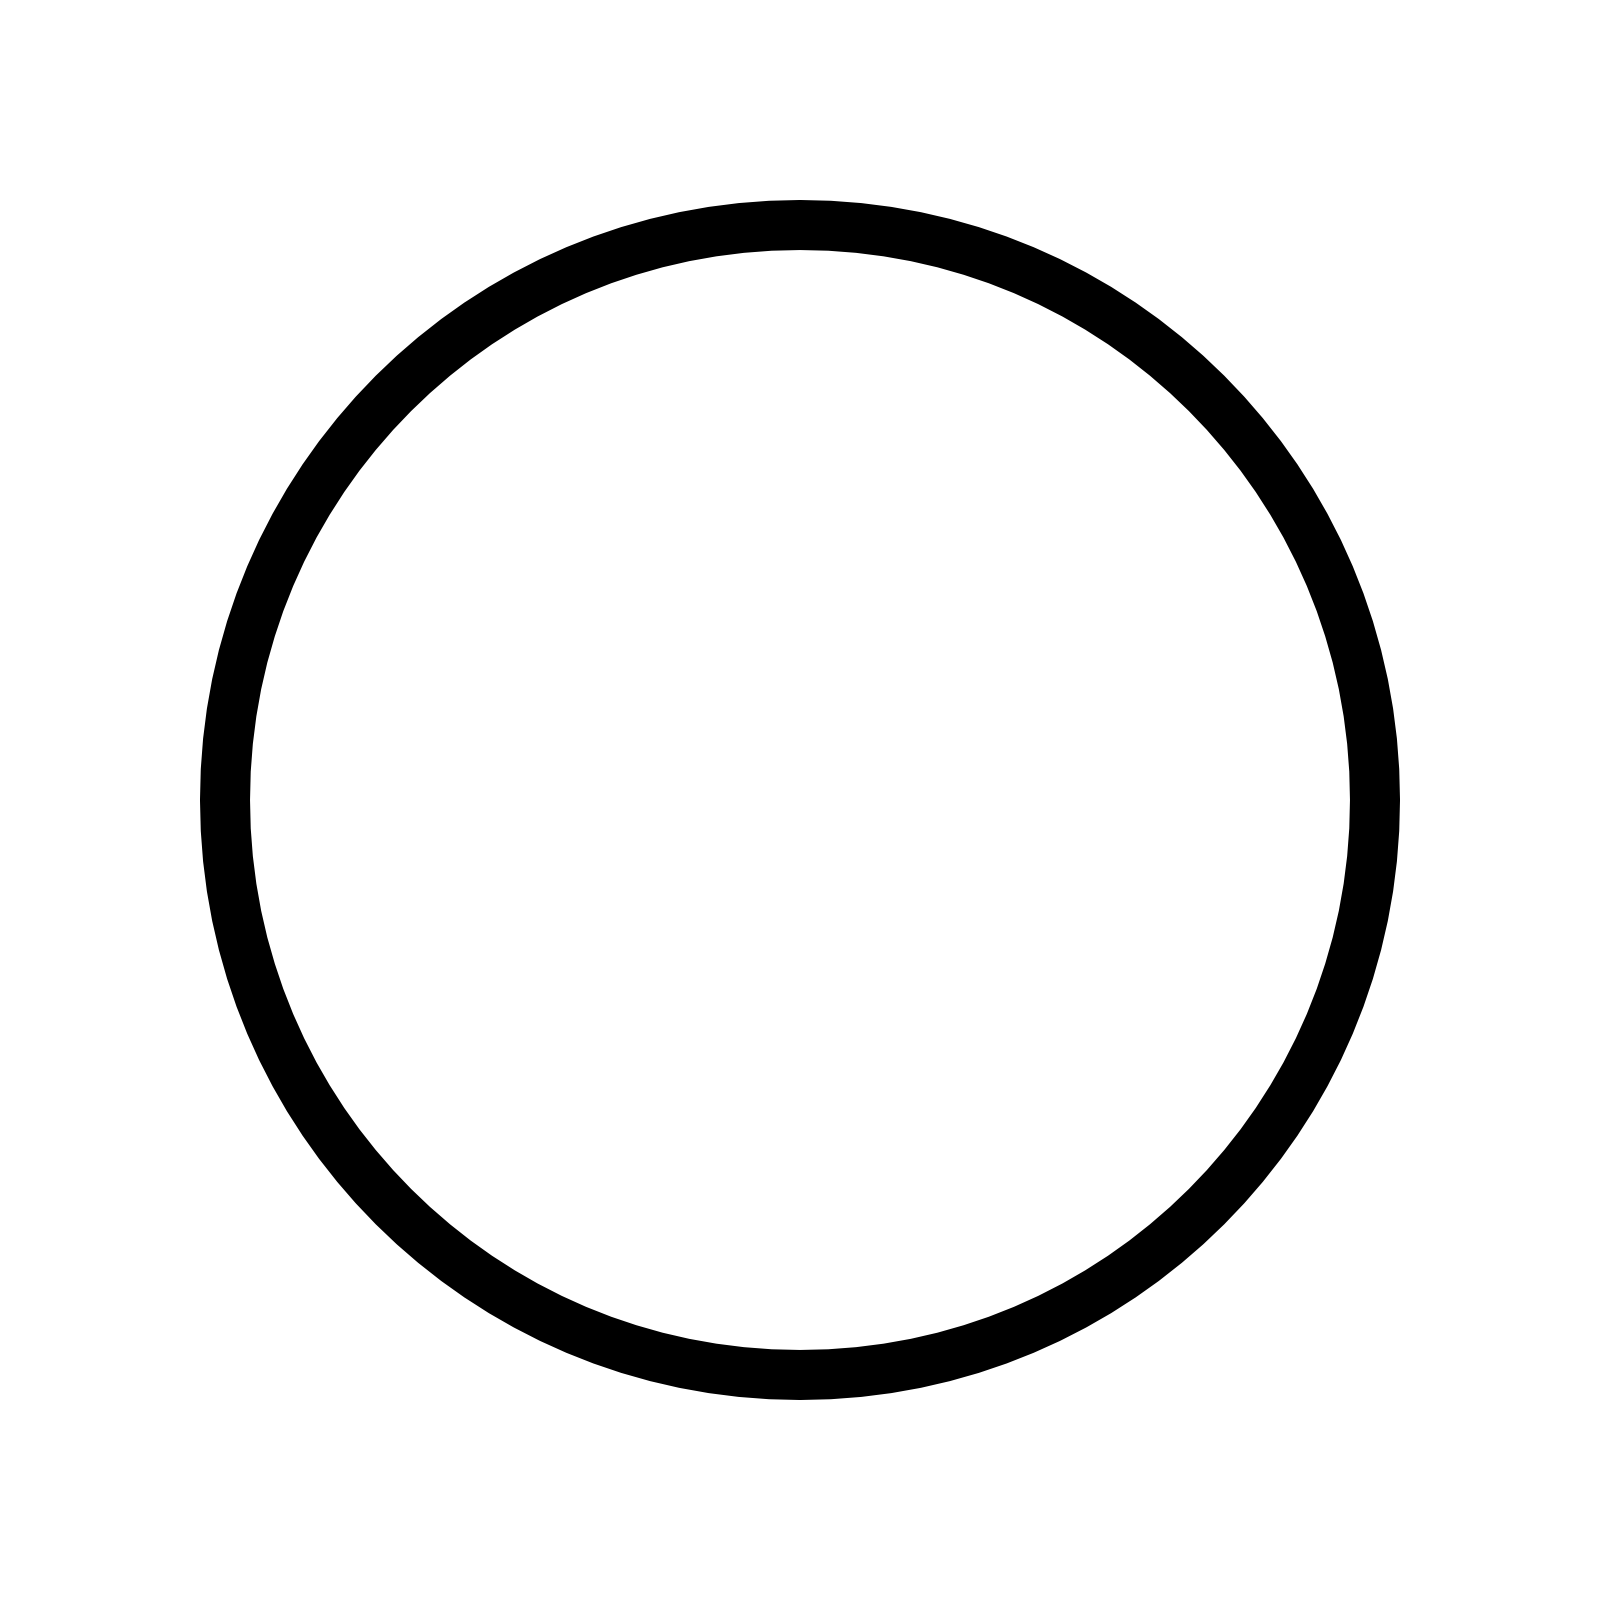 Black circle png transparent. Images pluspng hd